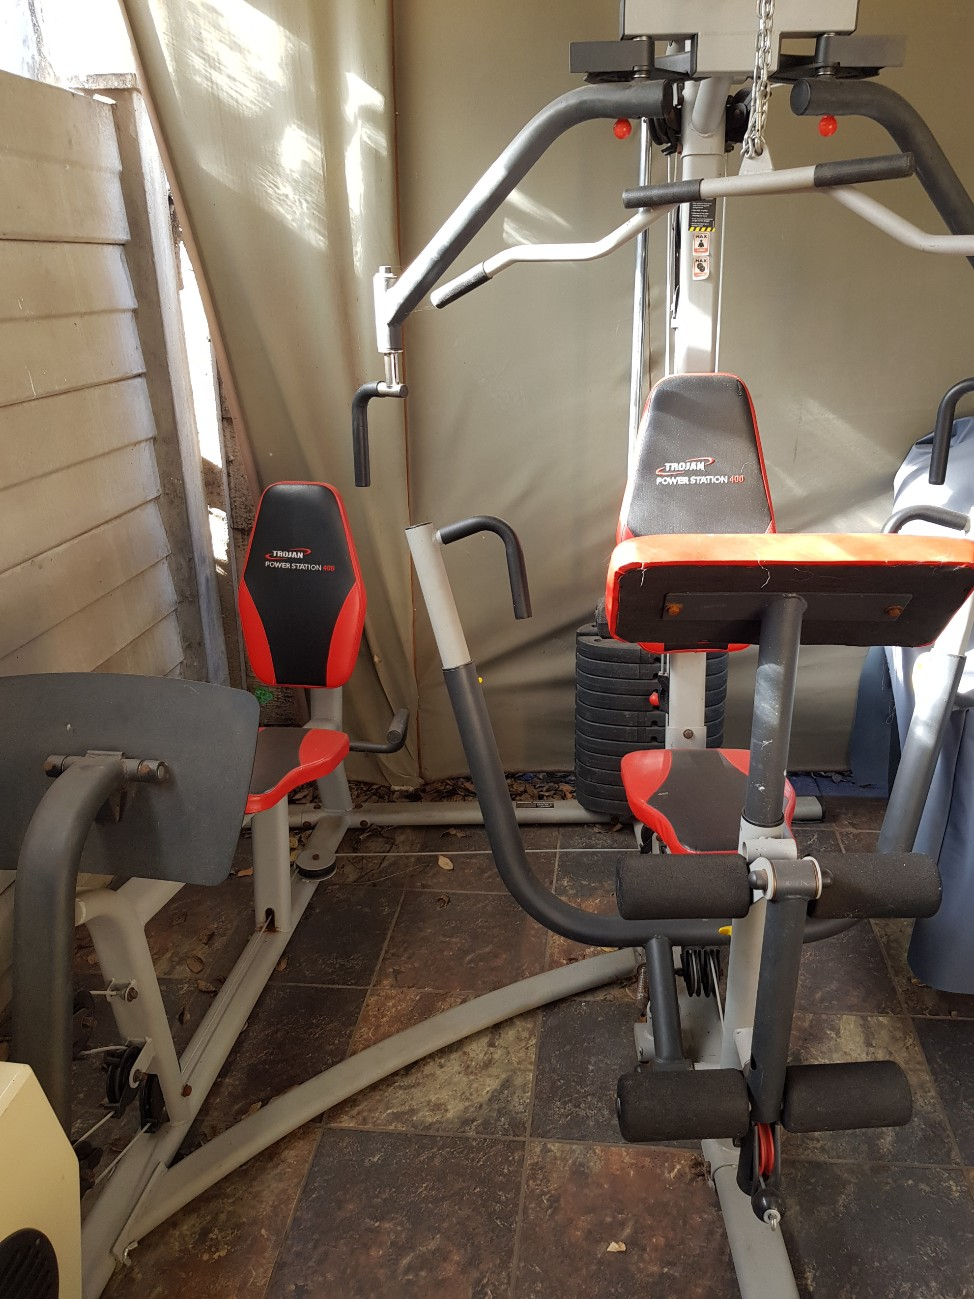 Home gym Trojan power station 400 for sale